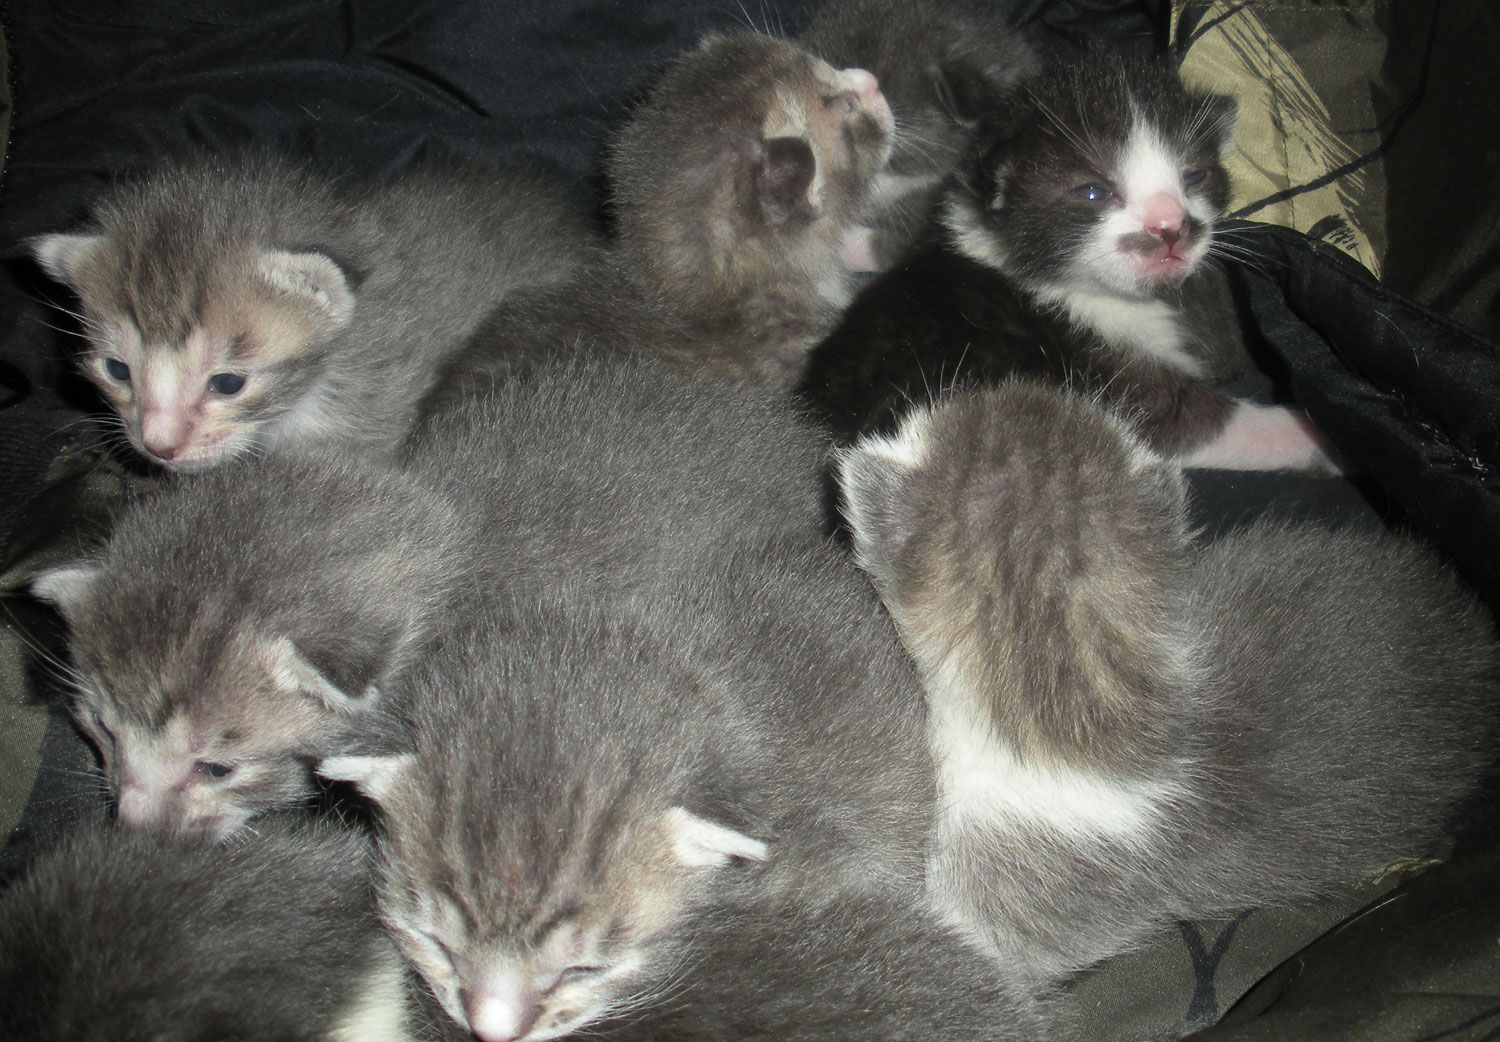 Kittens - age 9 days